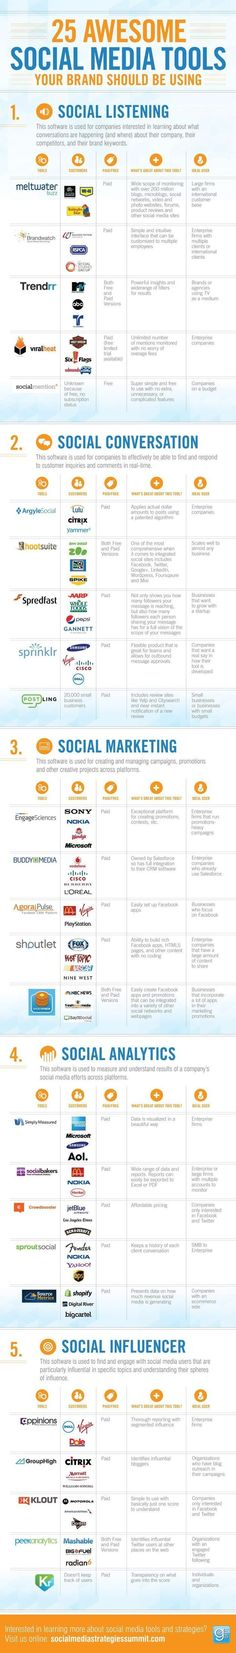 25 Awesome Social Media Tools - great infograhic highlighting valuable social listening, conversation, marketing, analytics, and influencer tools. Inbound Marketing, Social Marketing, Marketing Digital, Mundo Marketing, Marketing Trends, Marketing En Internet, Marketing Online, Marketing Technology, Marketing Tools